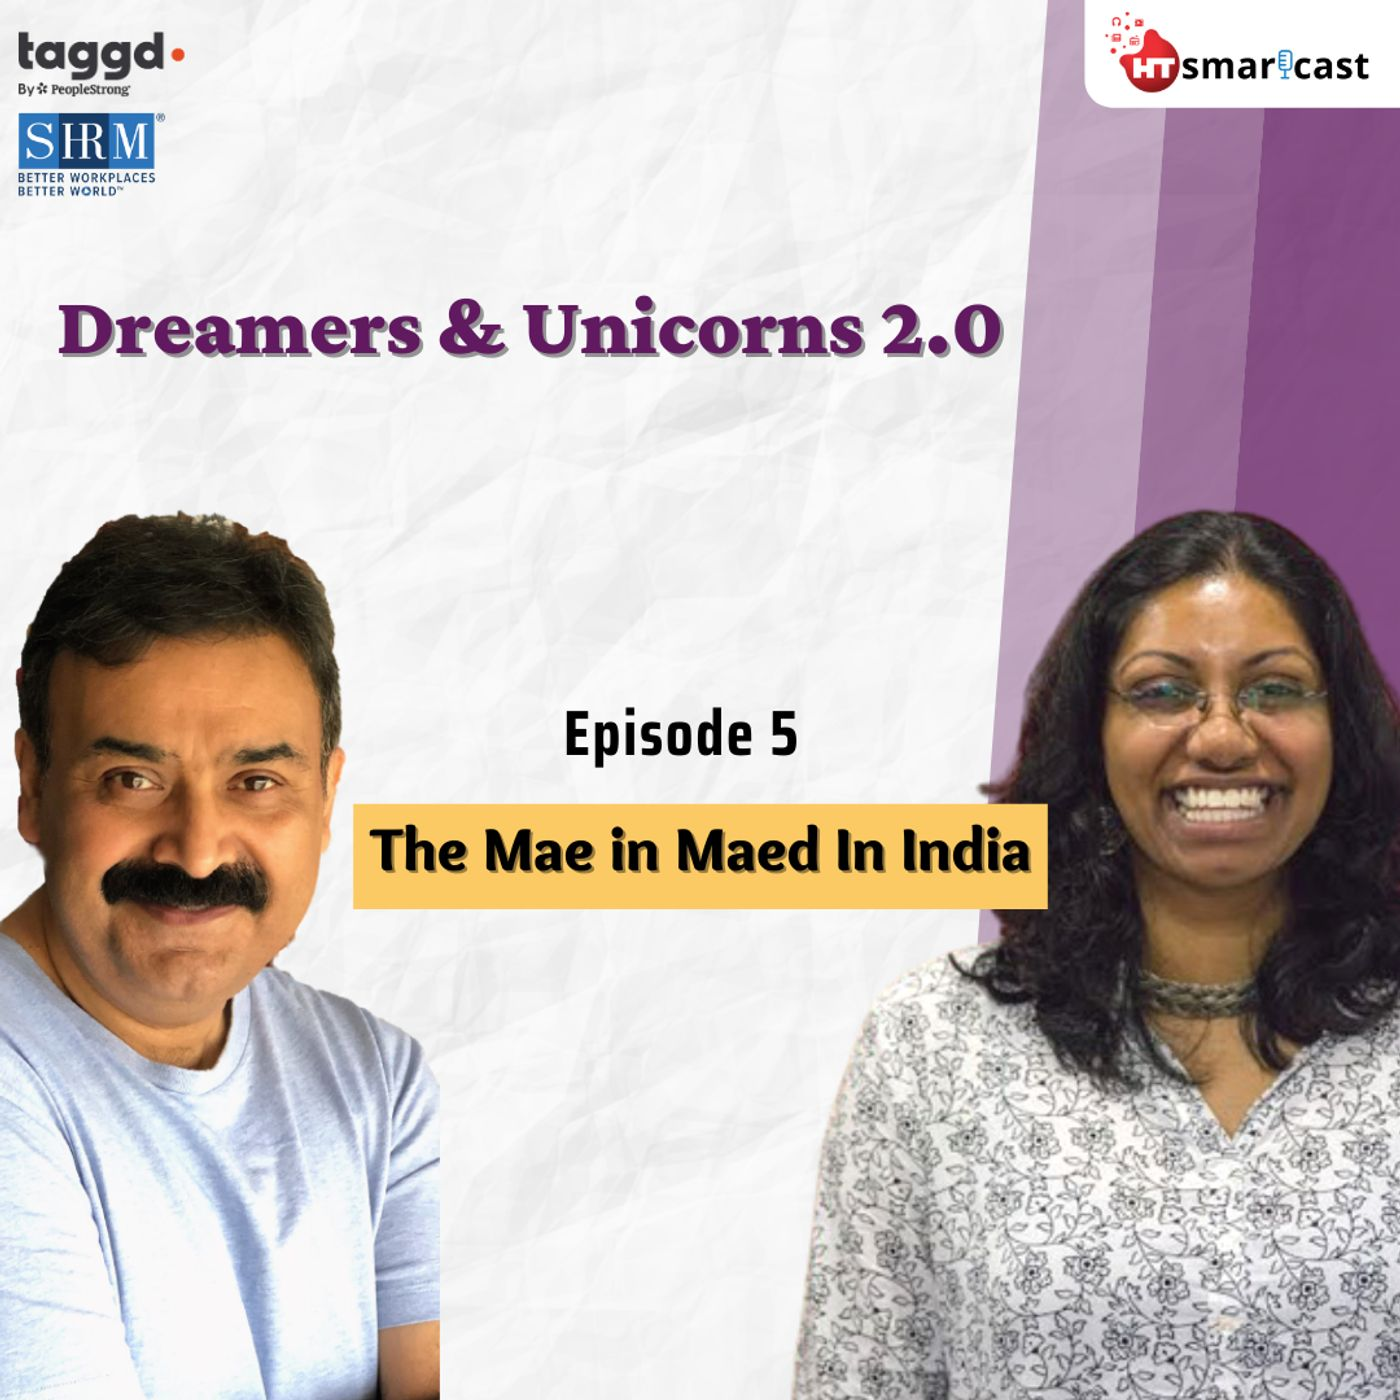 6: The Mae in Maed In India